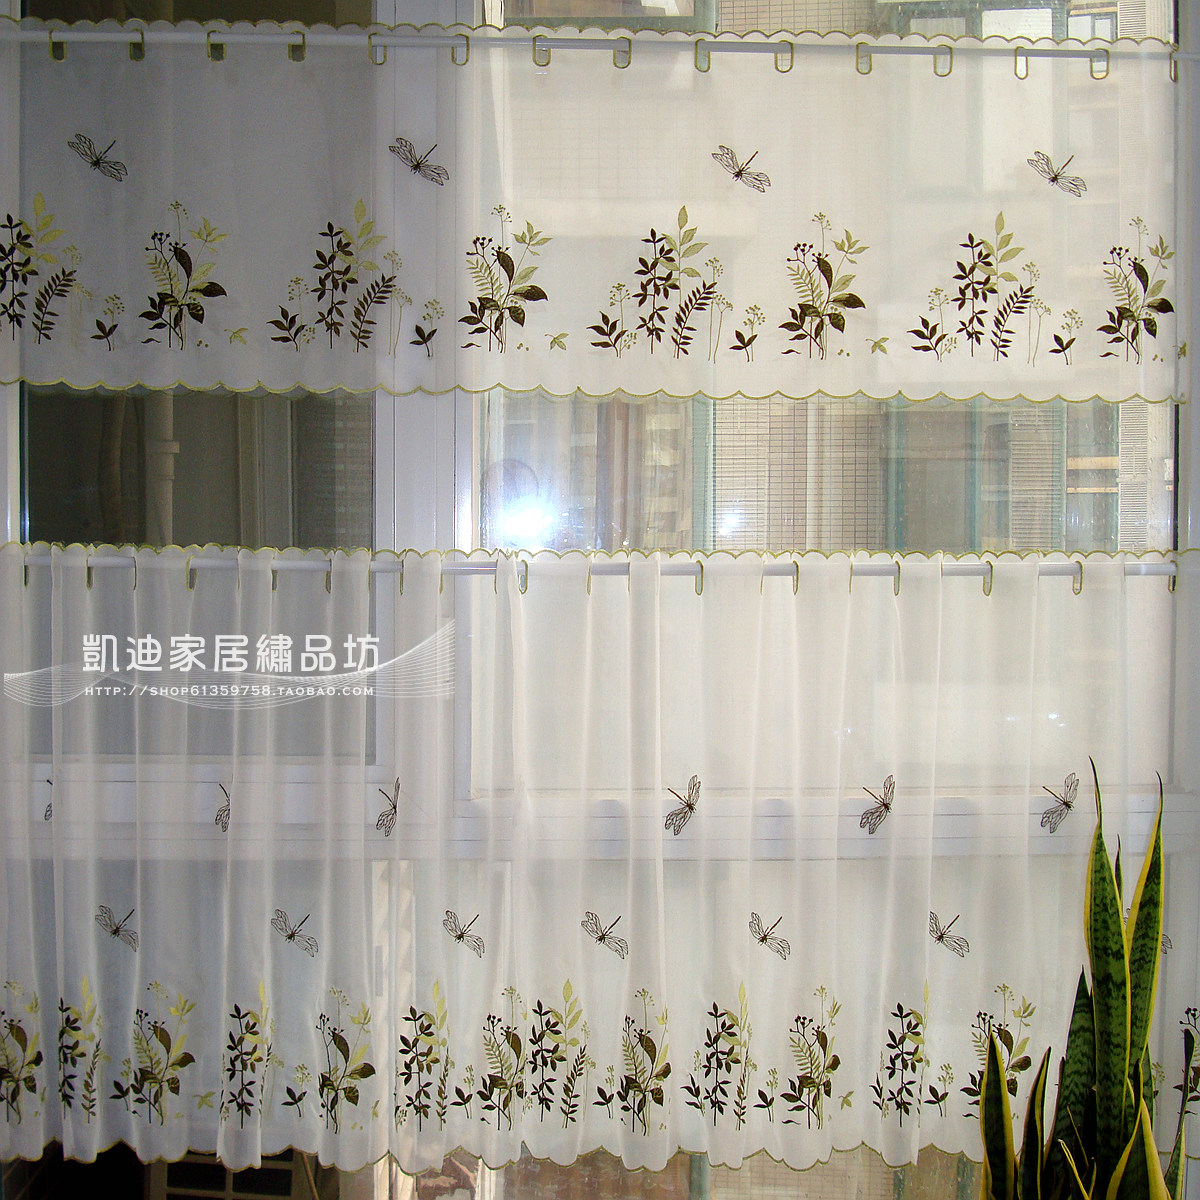 Kitchen fabric for curtains - Aliexpress Com Buy Kitchen Curtain Embroidery Fabric Coffee Curtain Tulle Curtains For Kitchen Short Curtains From Reliable Curtains Sewing Suppliers On